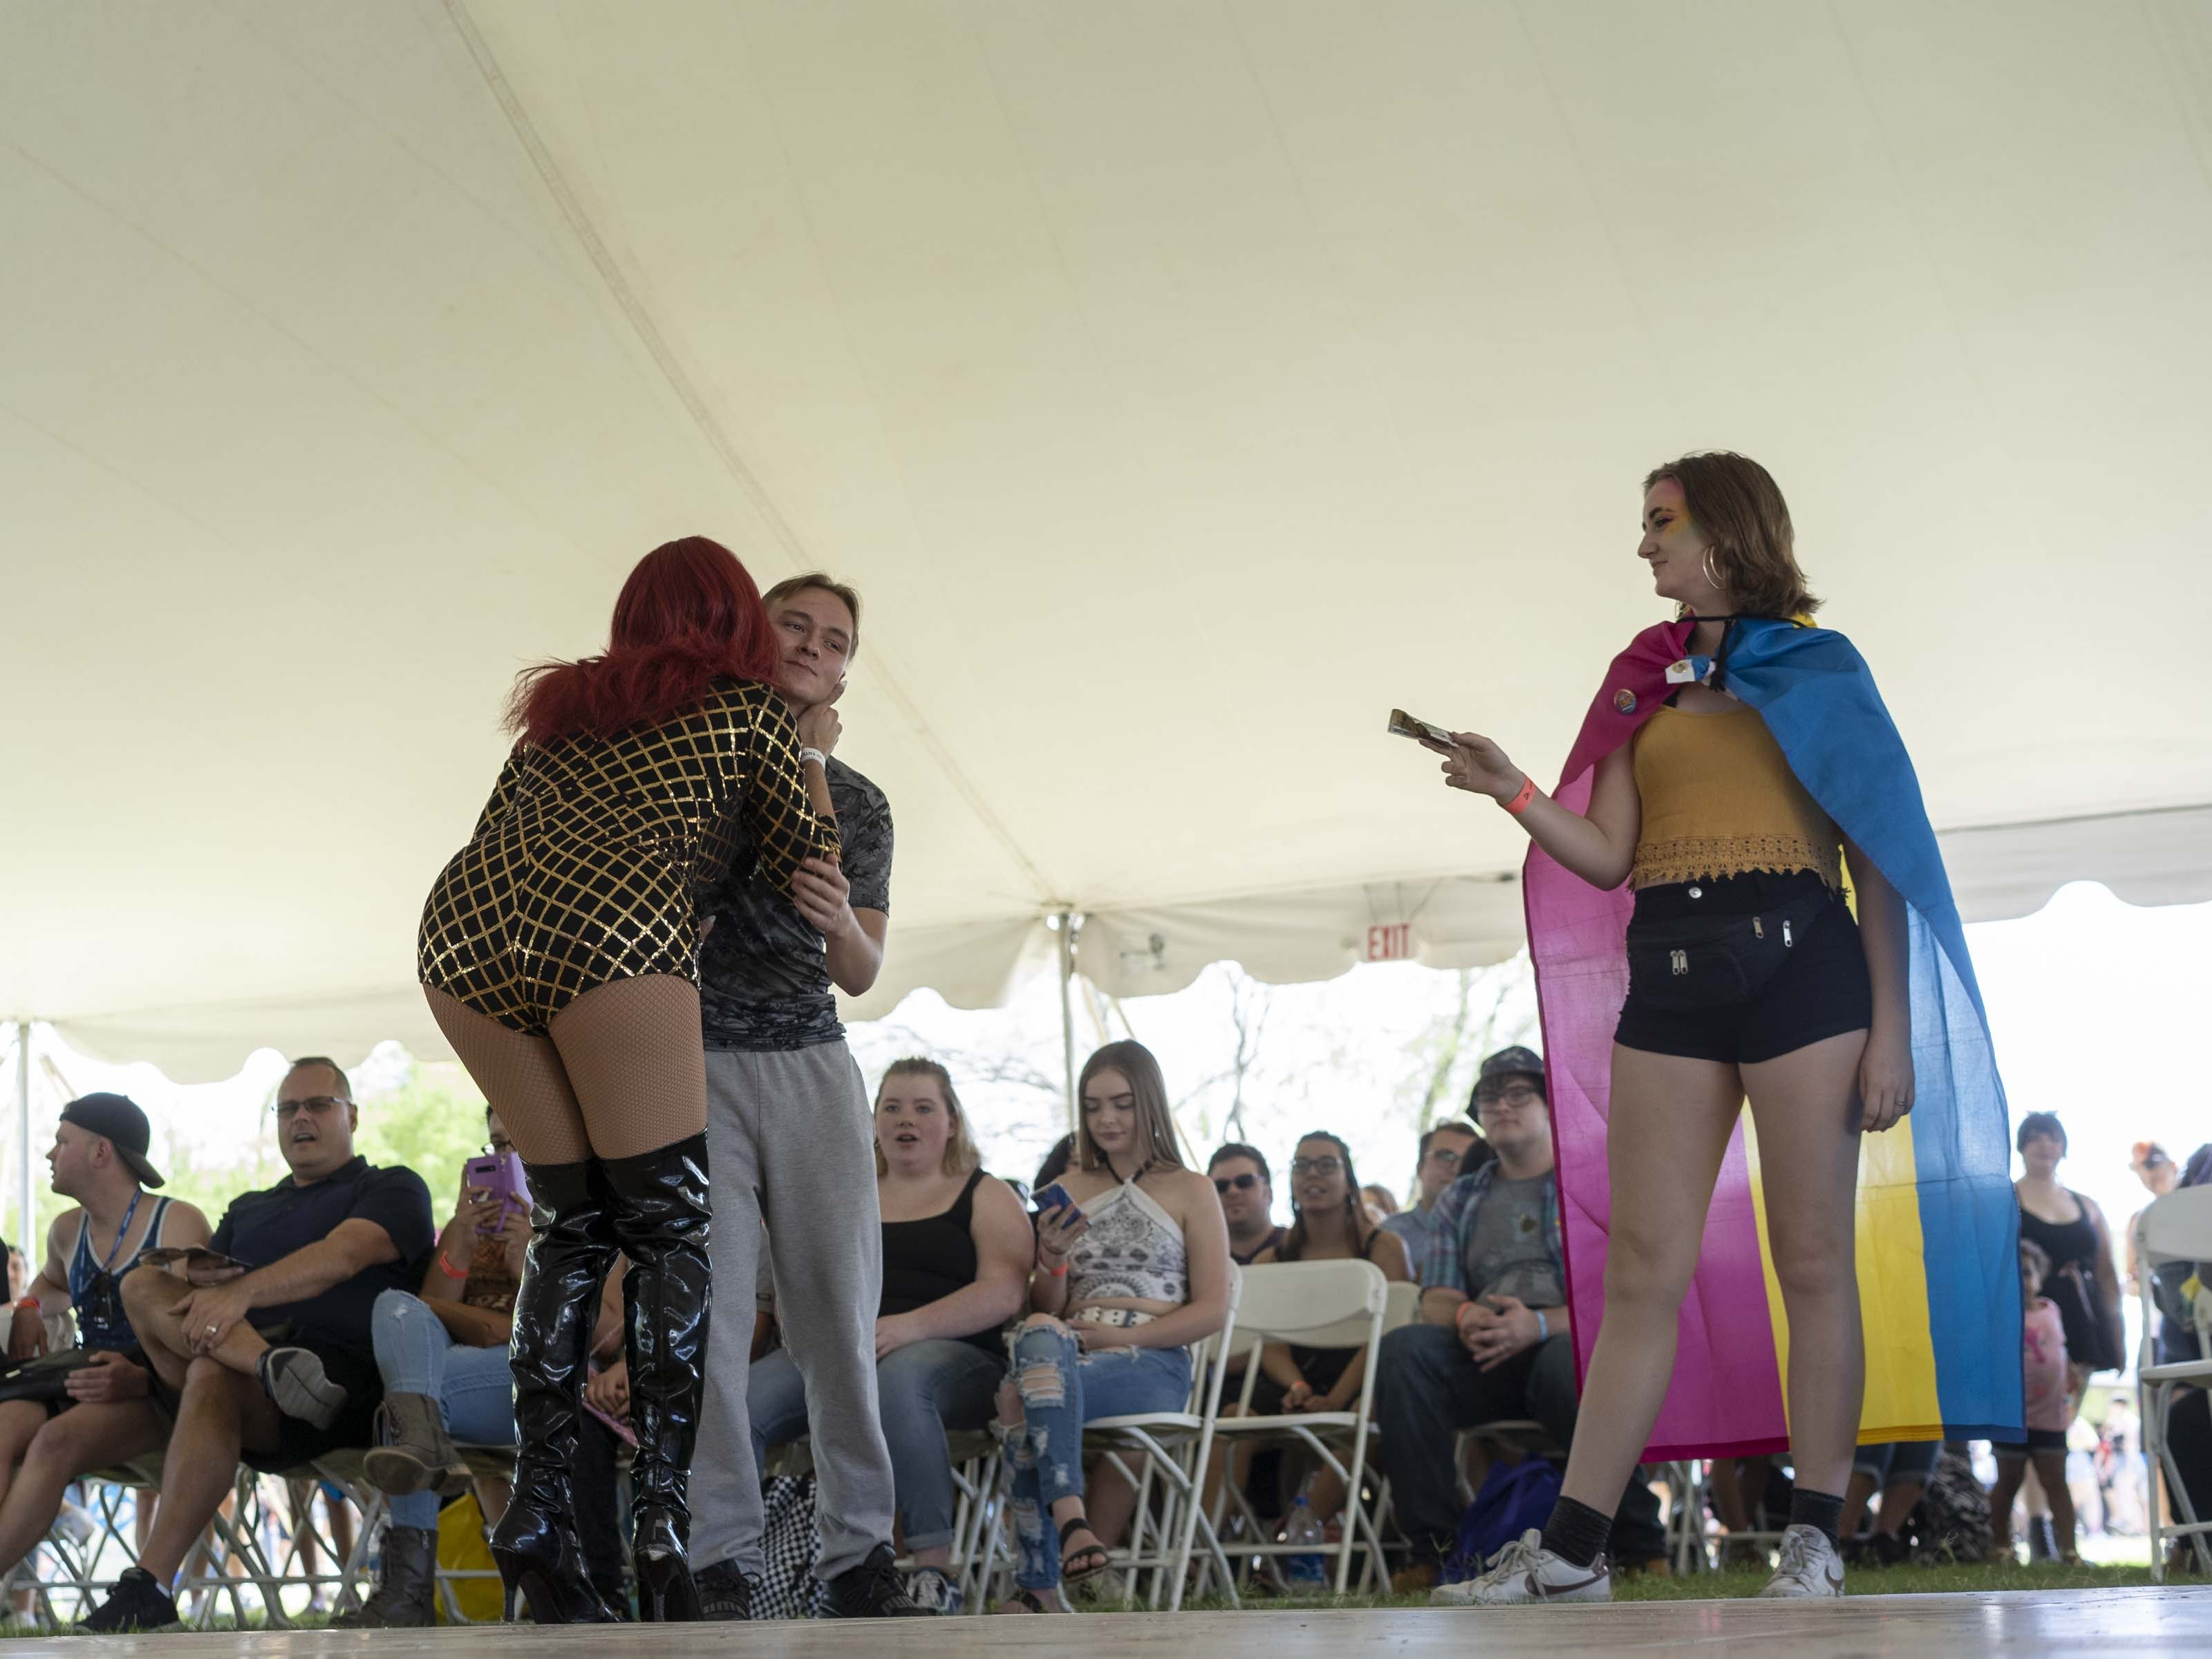 Drag queen Kim Etiquette performs while fans pay tips during Phoenix Pride at Steele Indian School Park on Saturday, April 6, 2019.